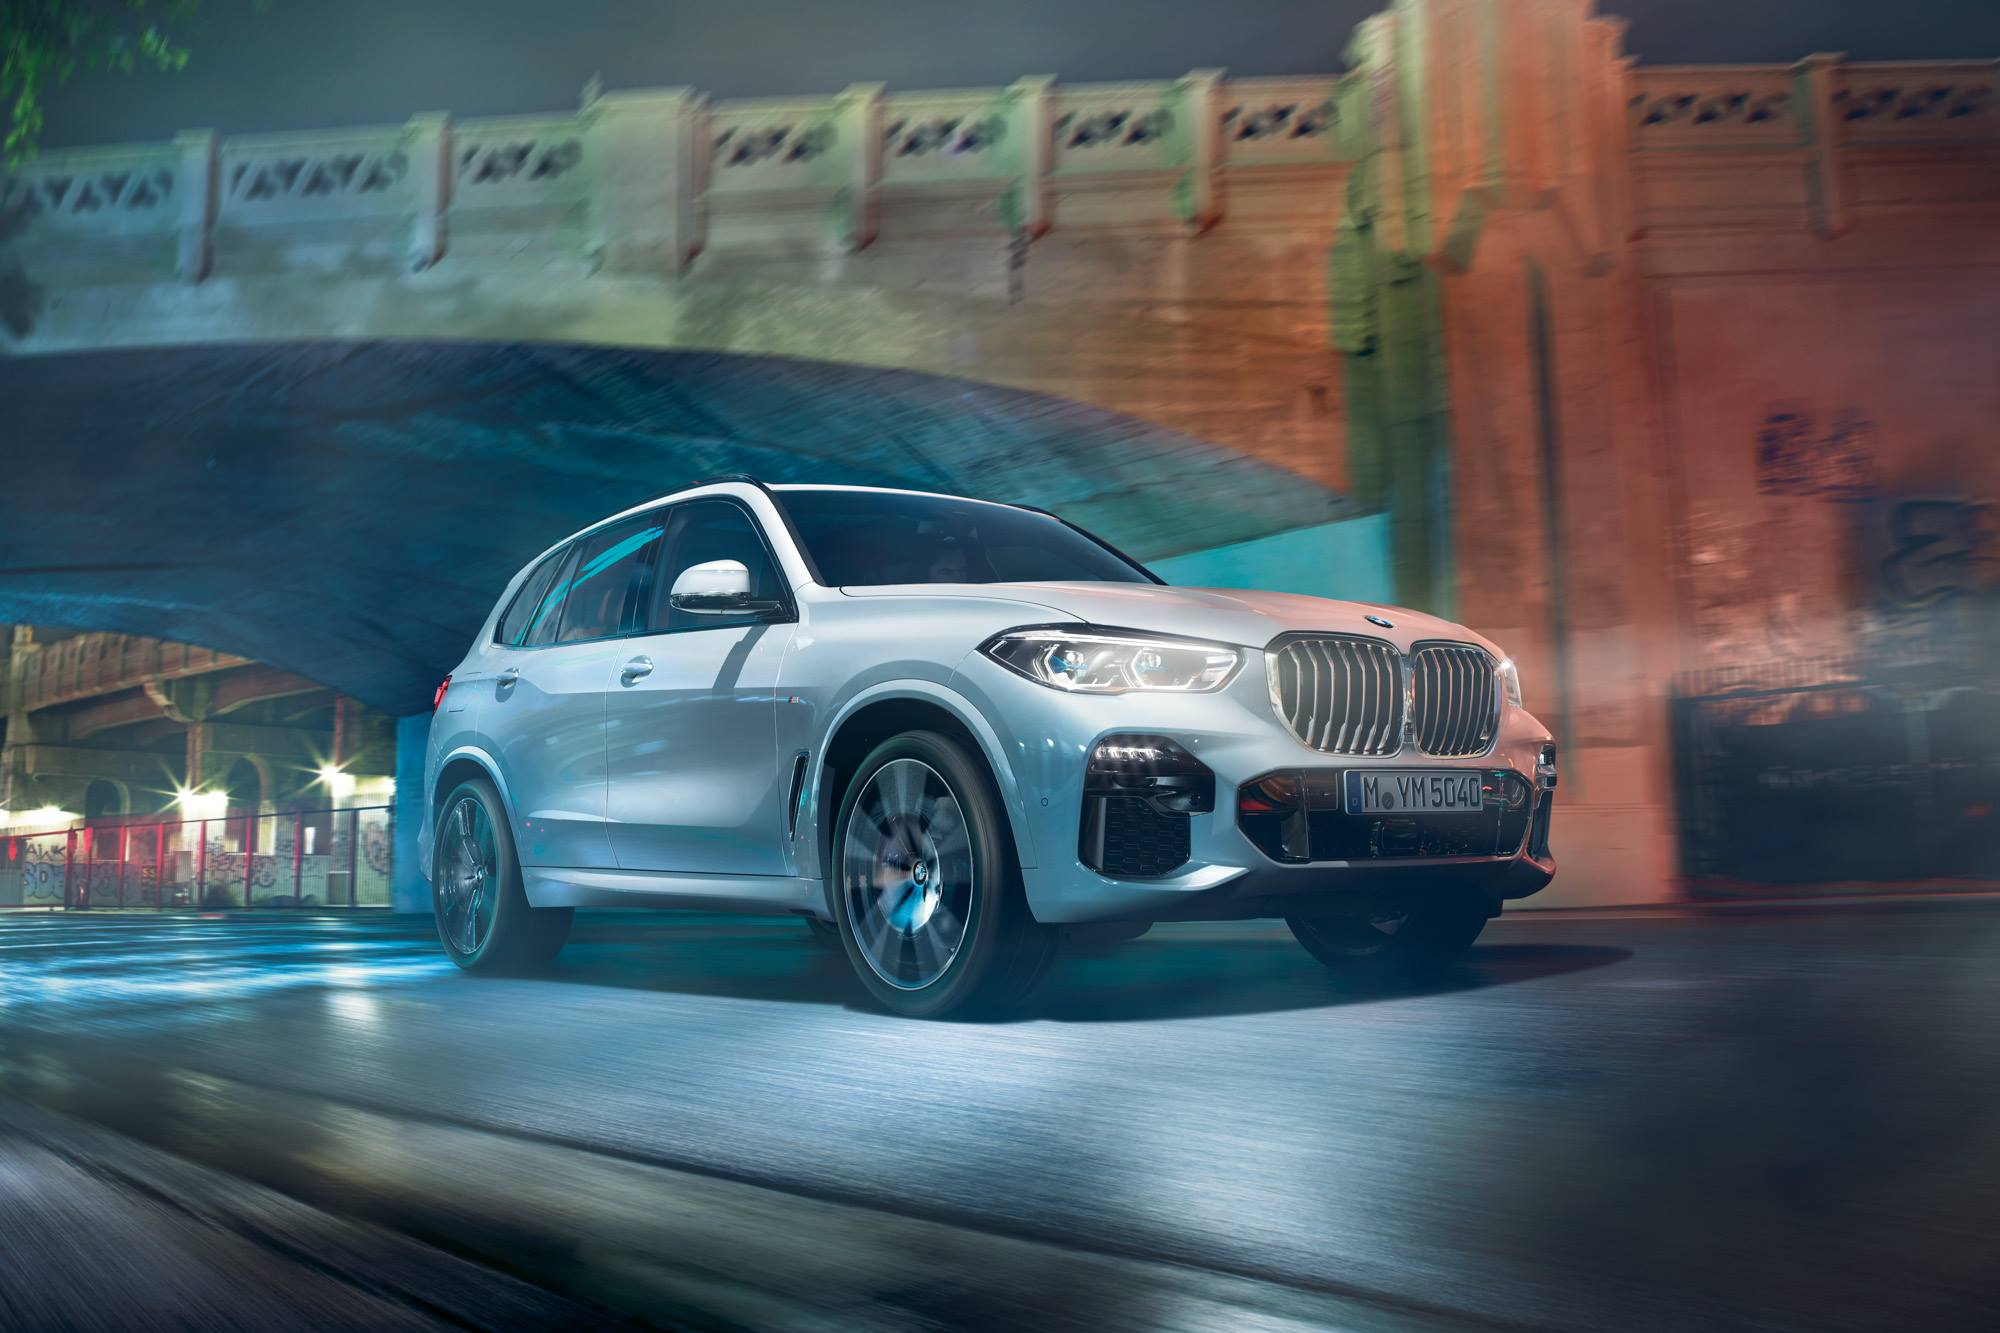 The Leader of the Pack. The 2019 BMW X5 xDrive40i.